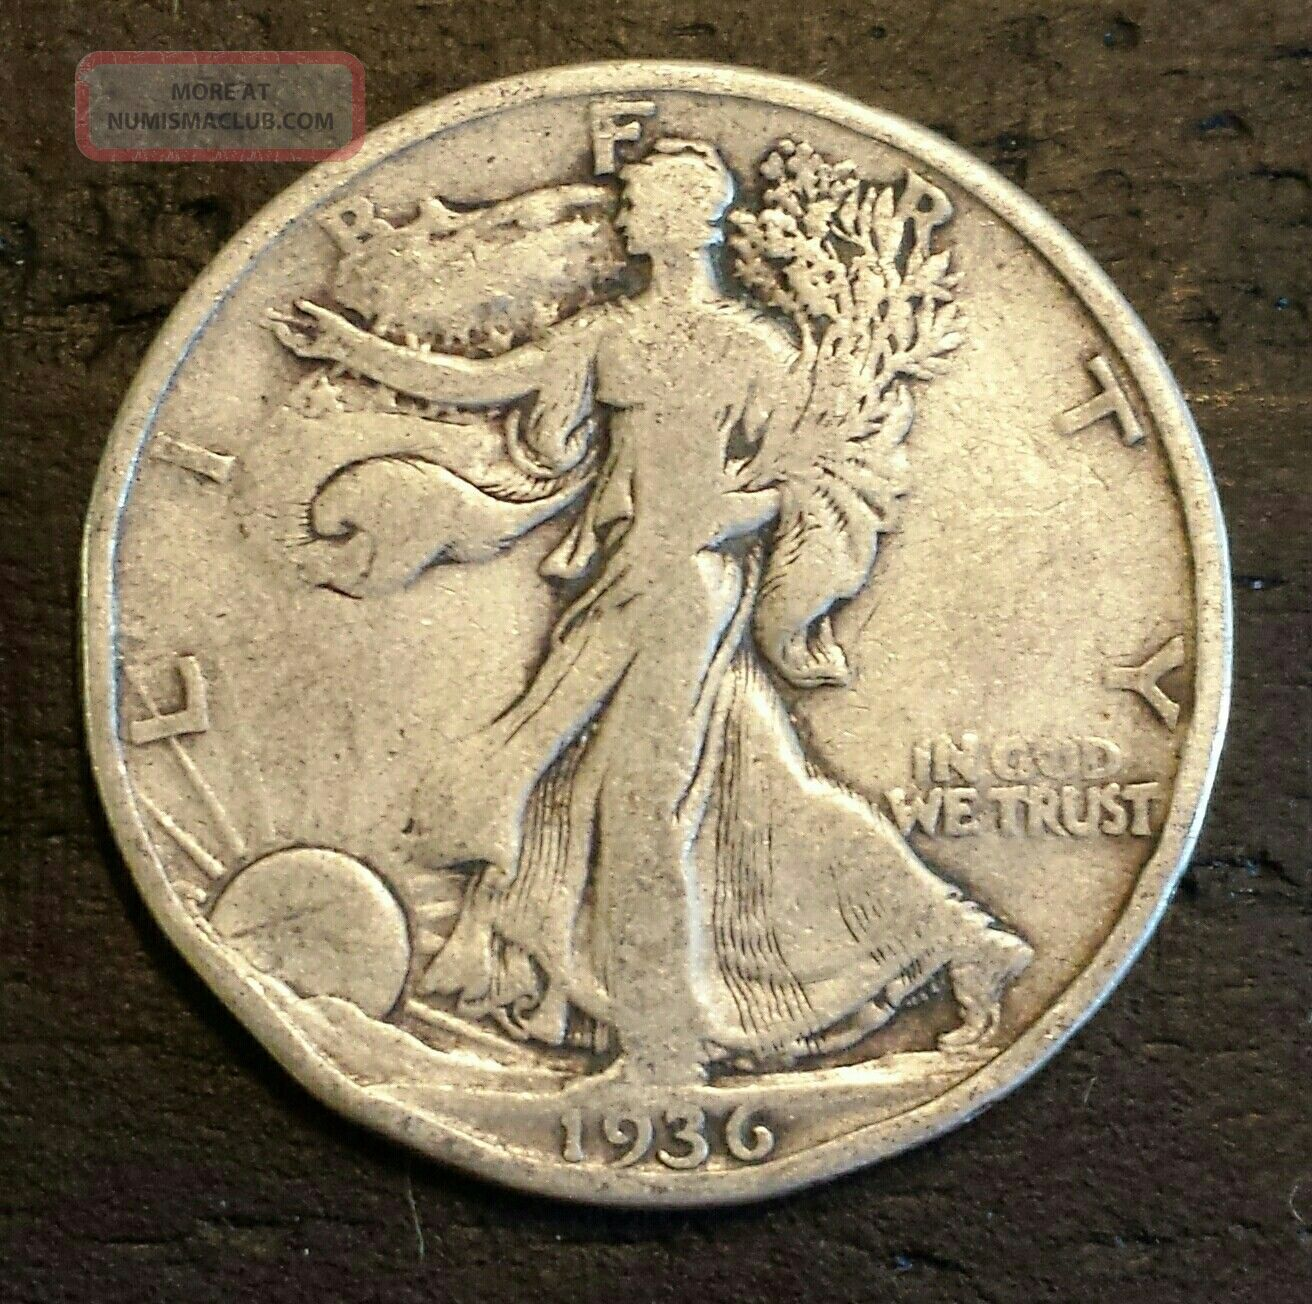 1936 50c Walking Liberty Half Dollar Liberty Walking (1916-47) photo